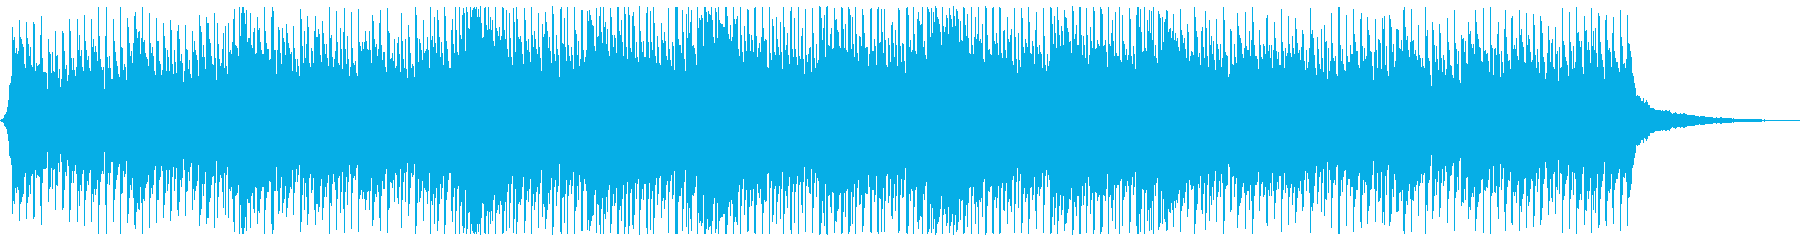 Refreshing and positive pops's reproduced waveform